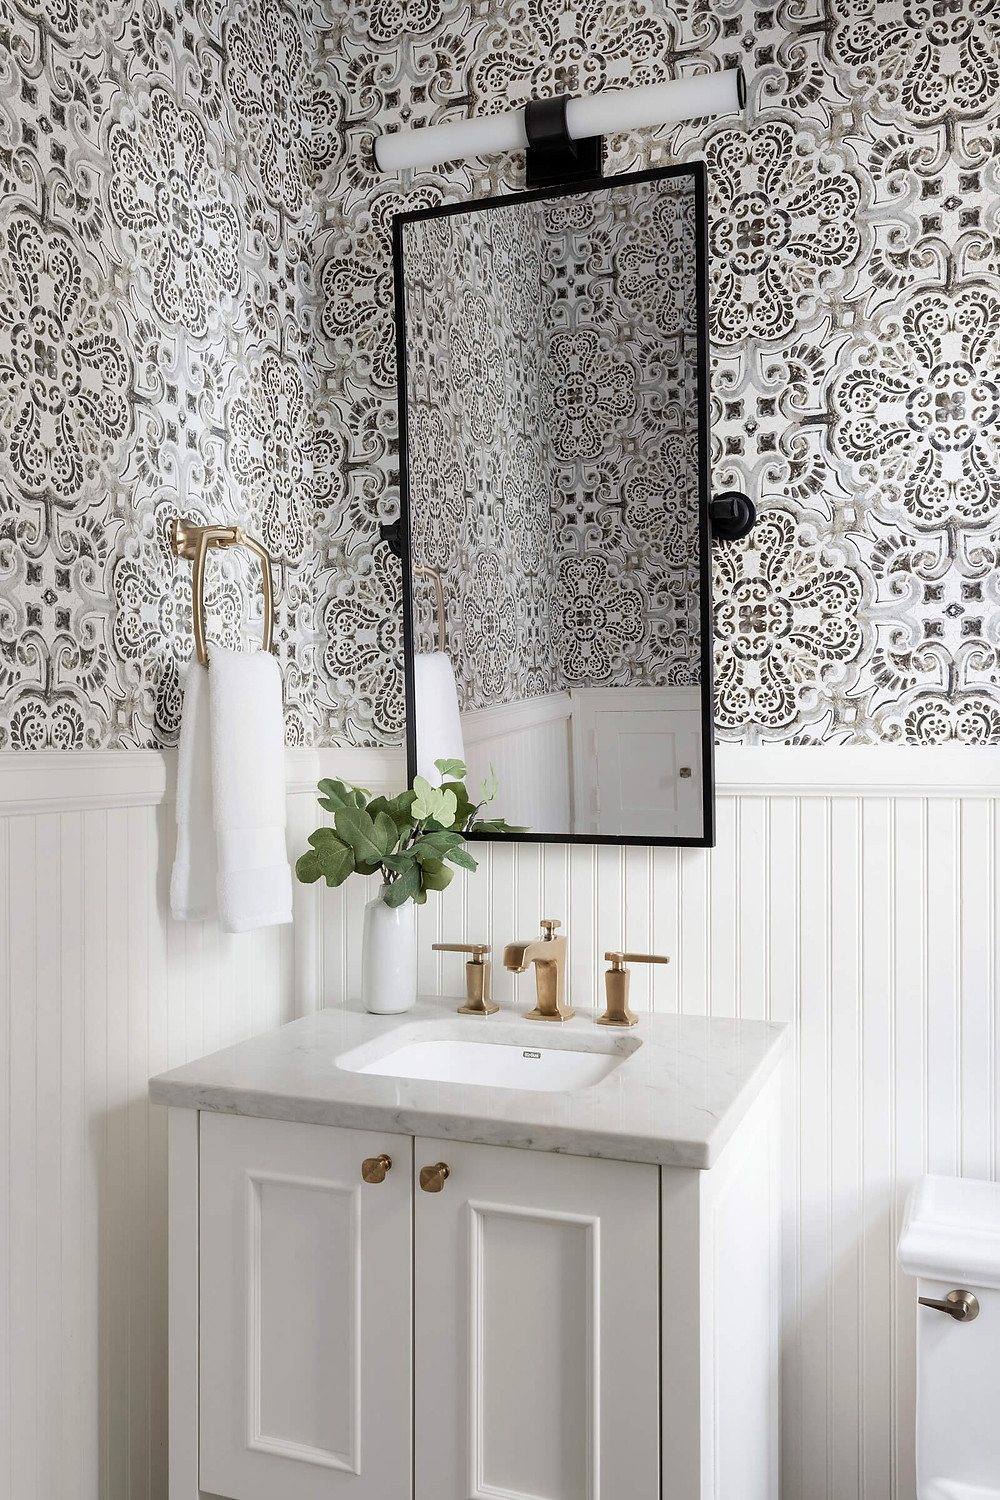 10 ways to add character to your home, add texture in small spaces such as wallpaper.